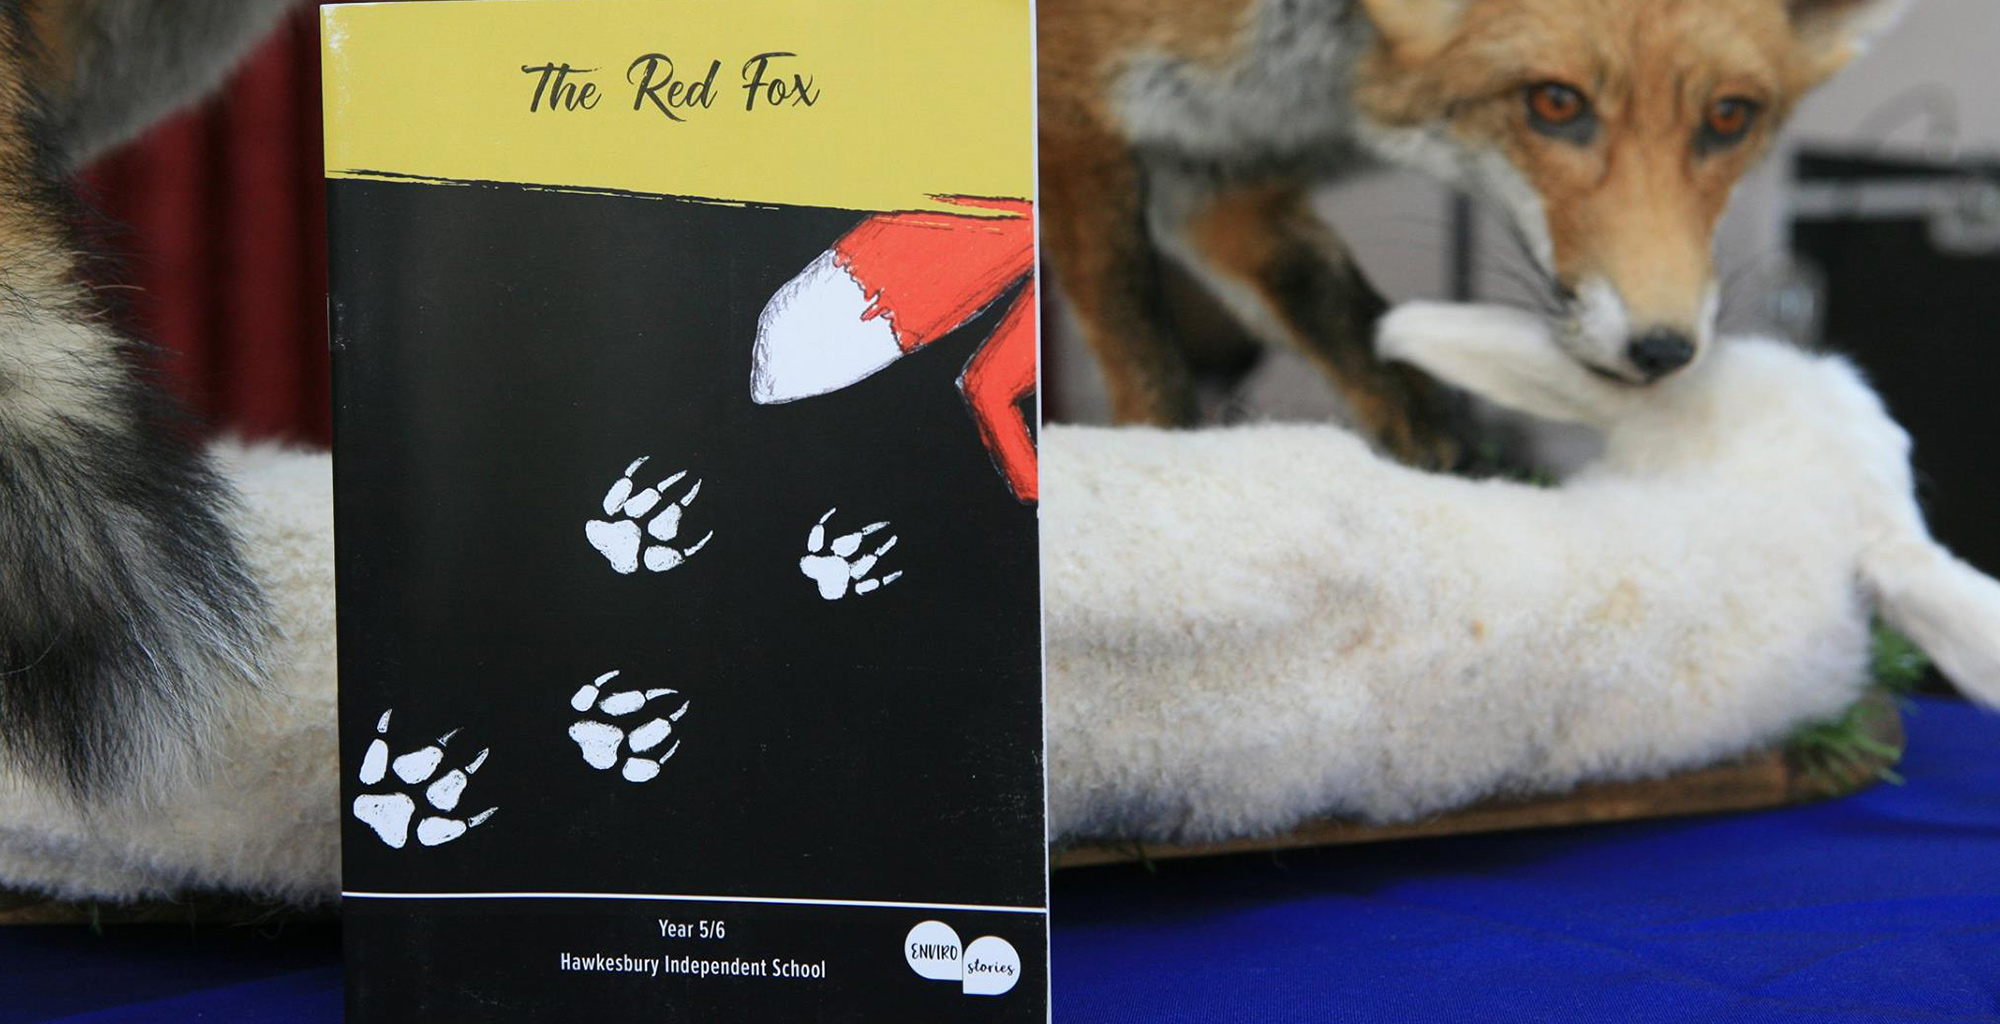 The Red Fox Book